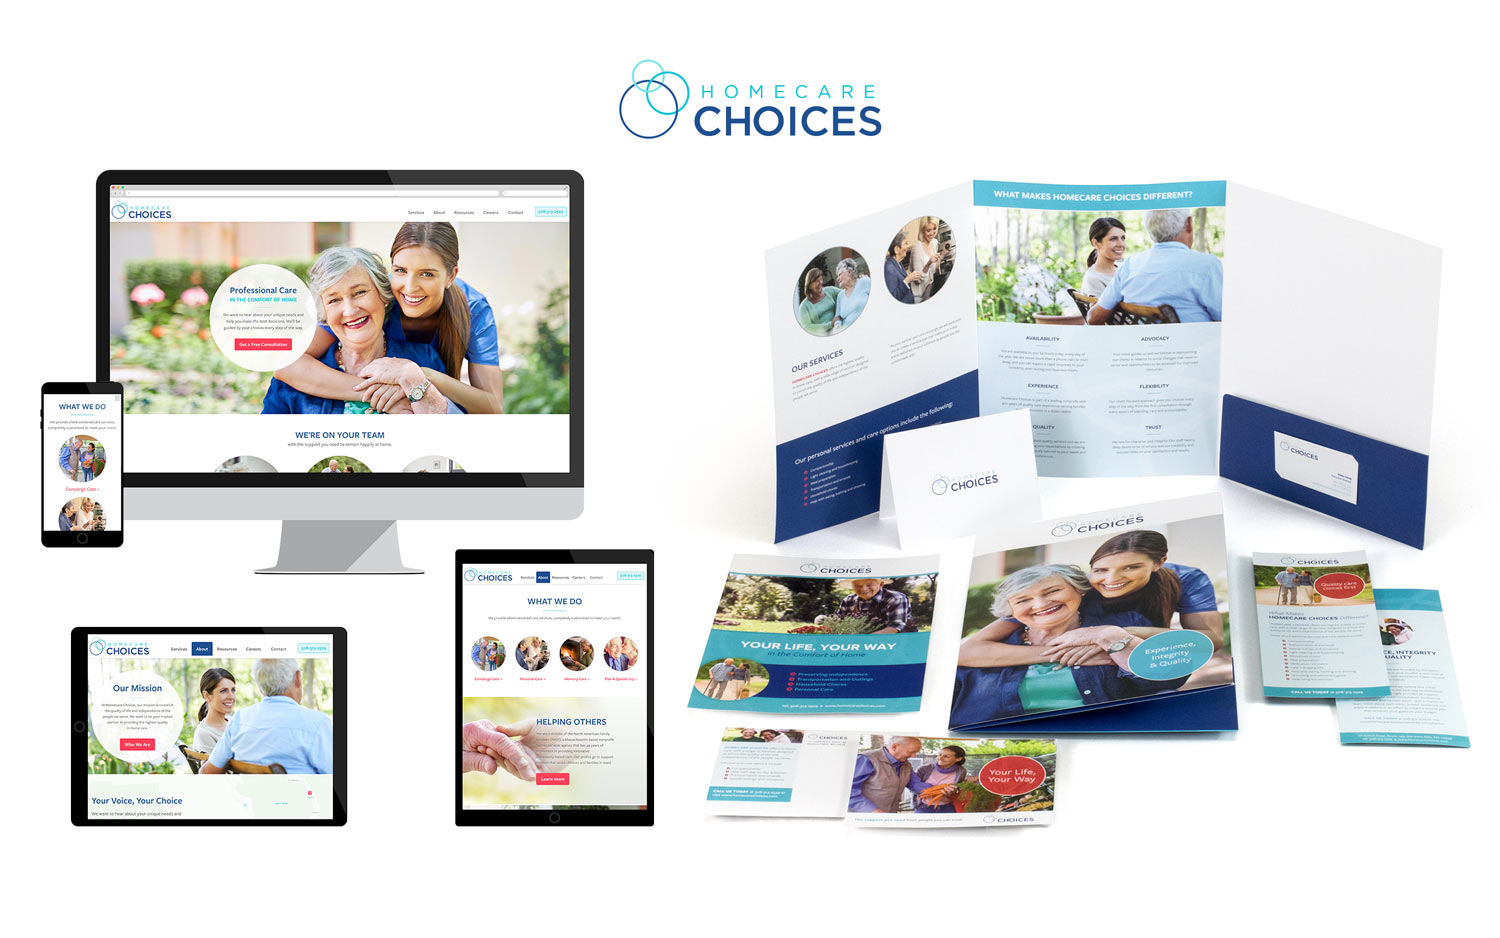 Homecare Choices Campaign